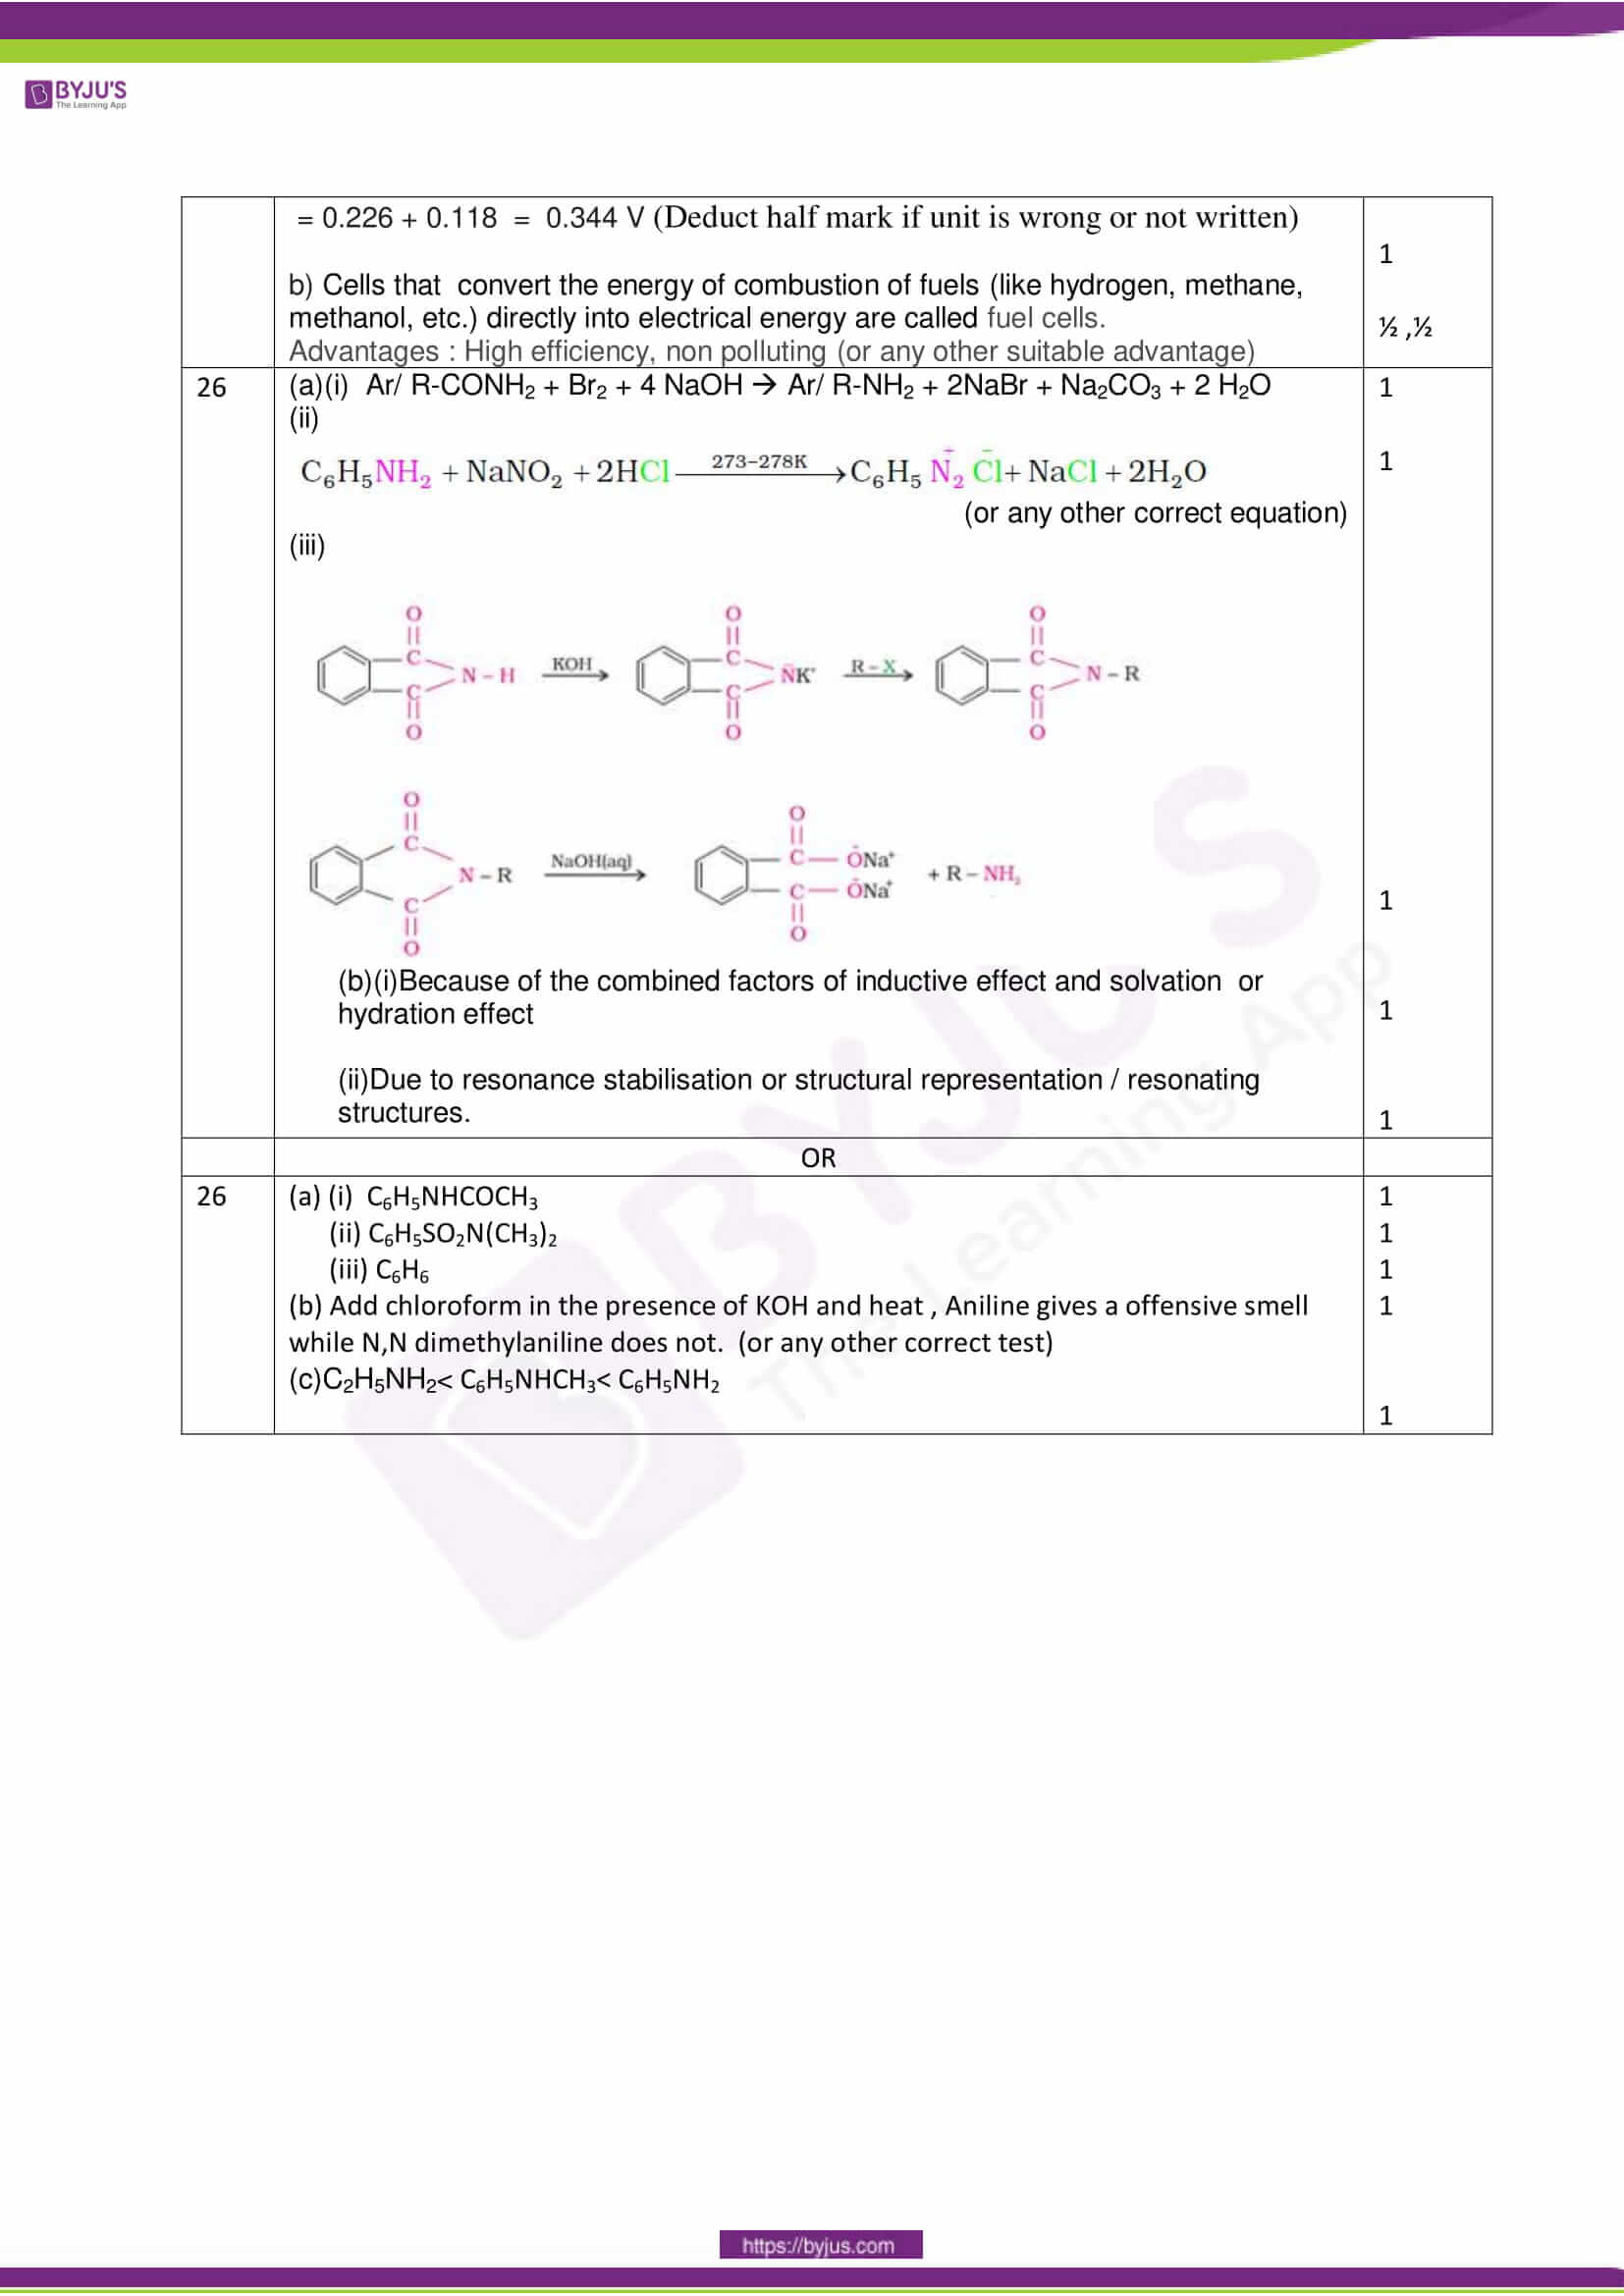 cbse class 12 solution 2018 chemistry set 1